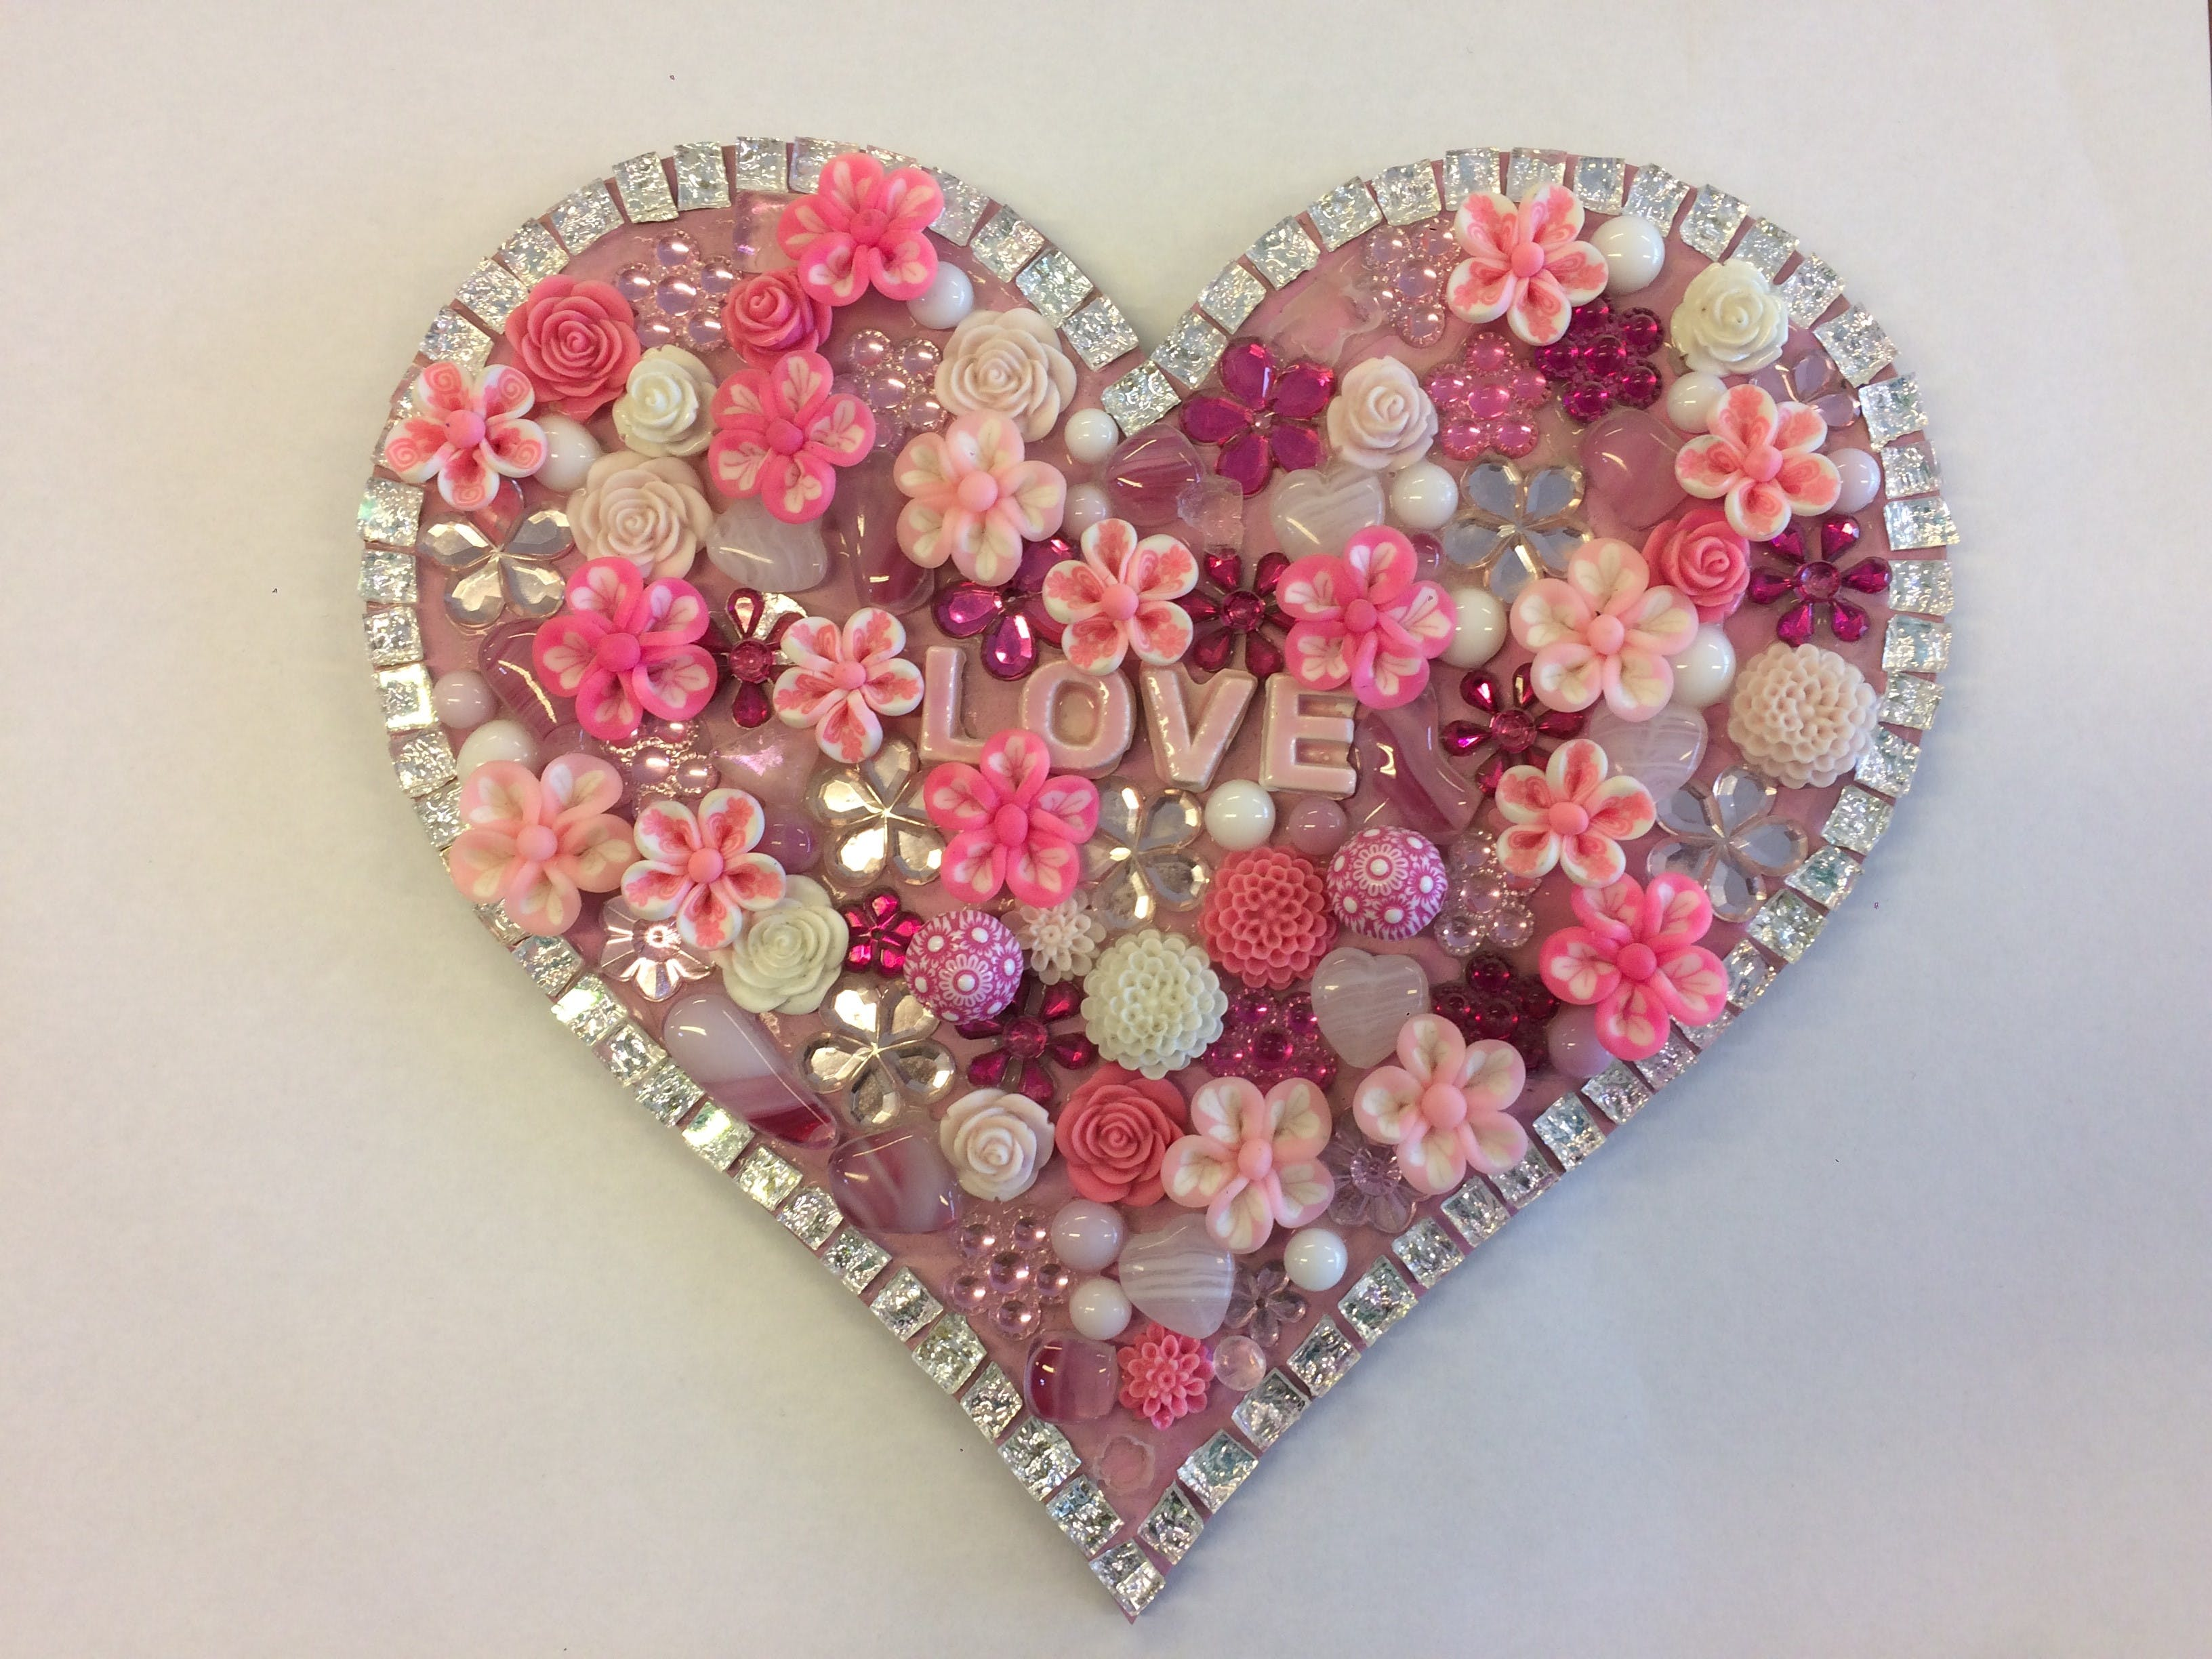 Flowers and Bling Mosaic Class for Kids - ACT Tourism